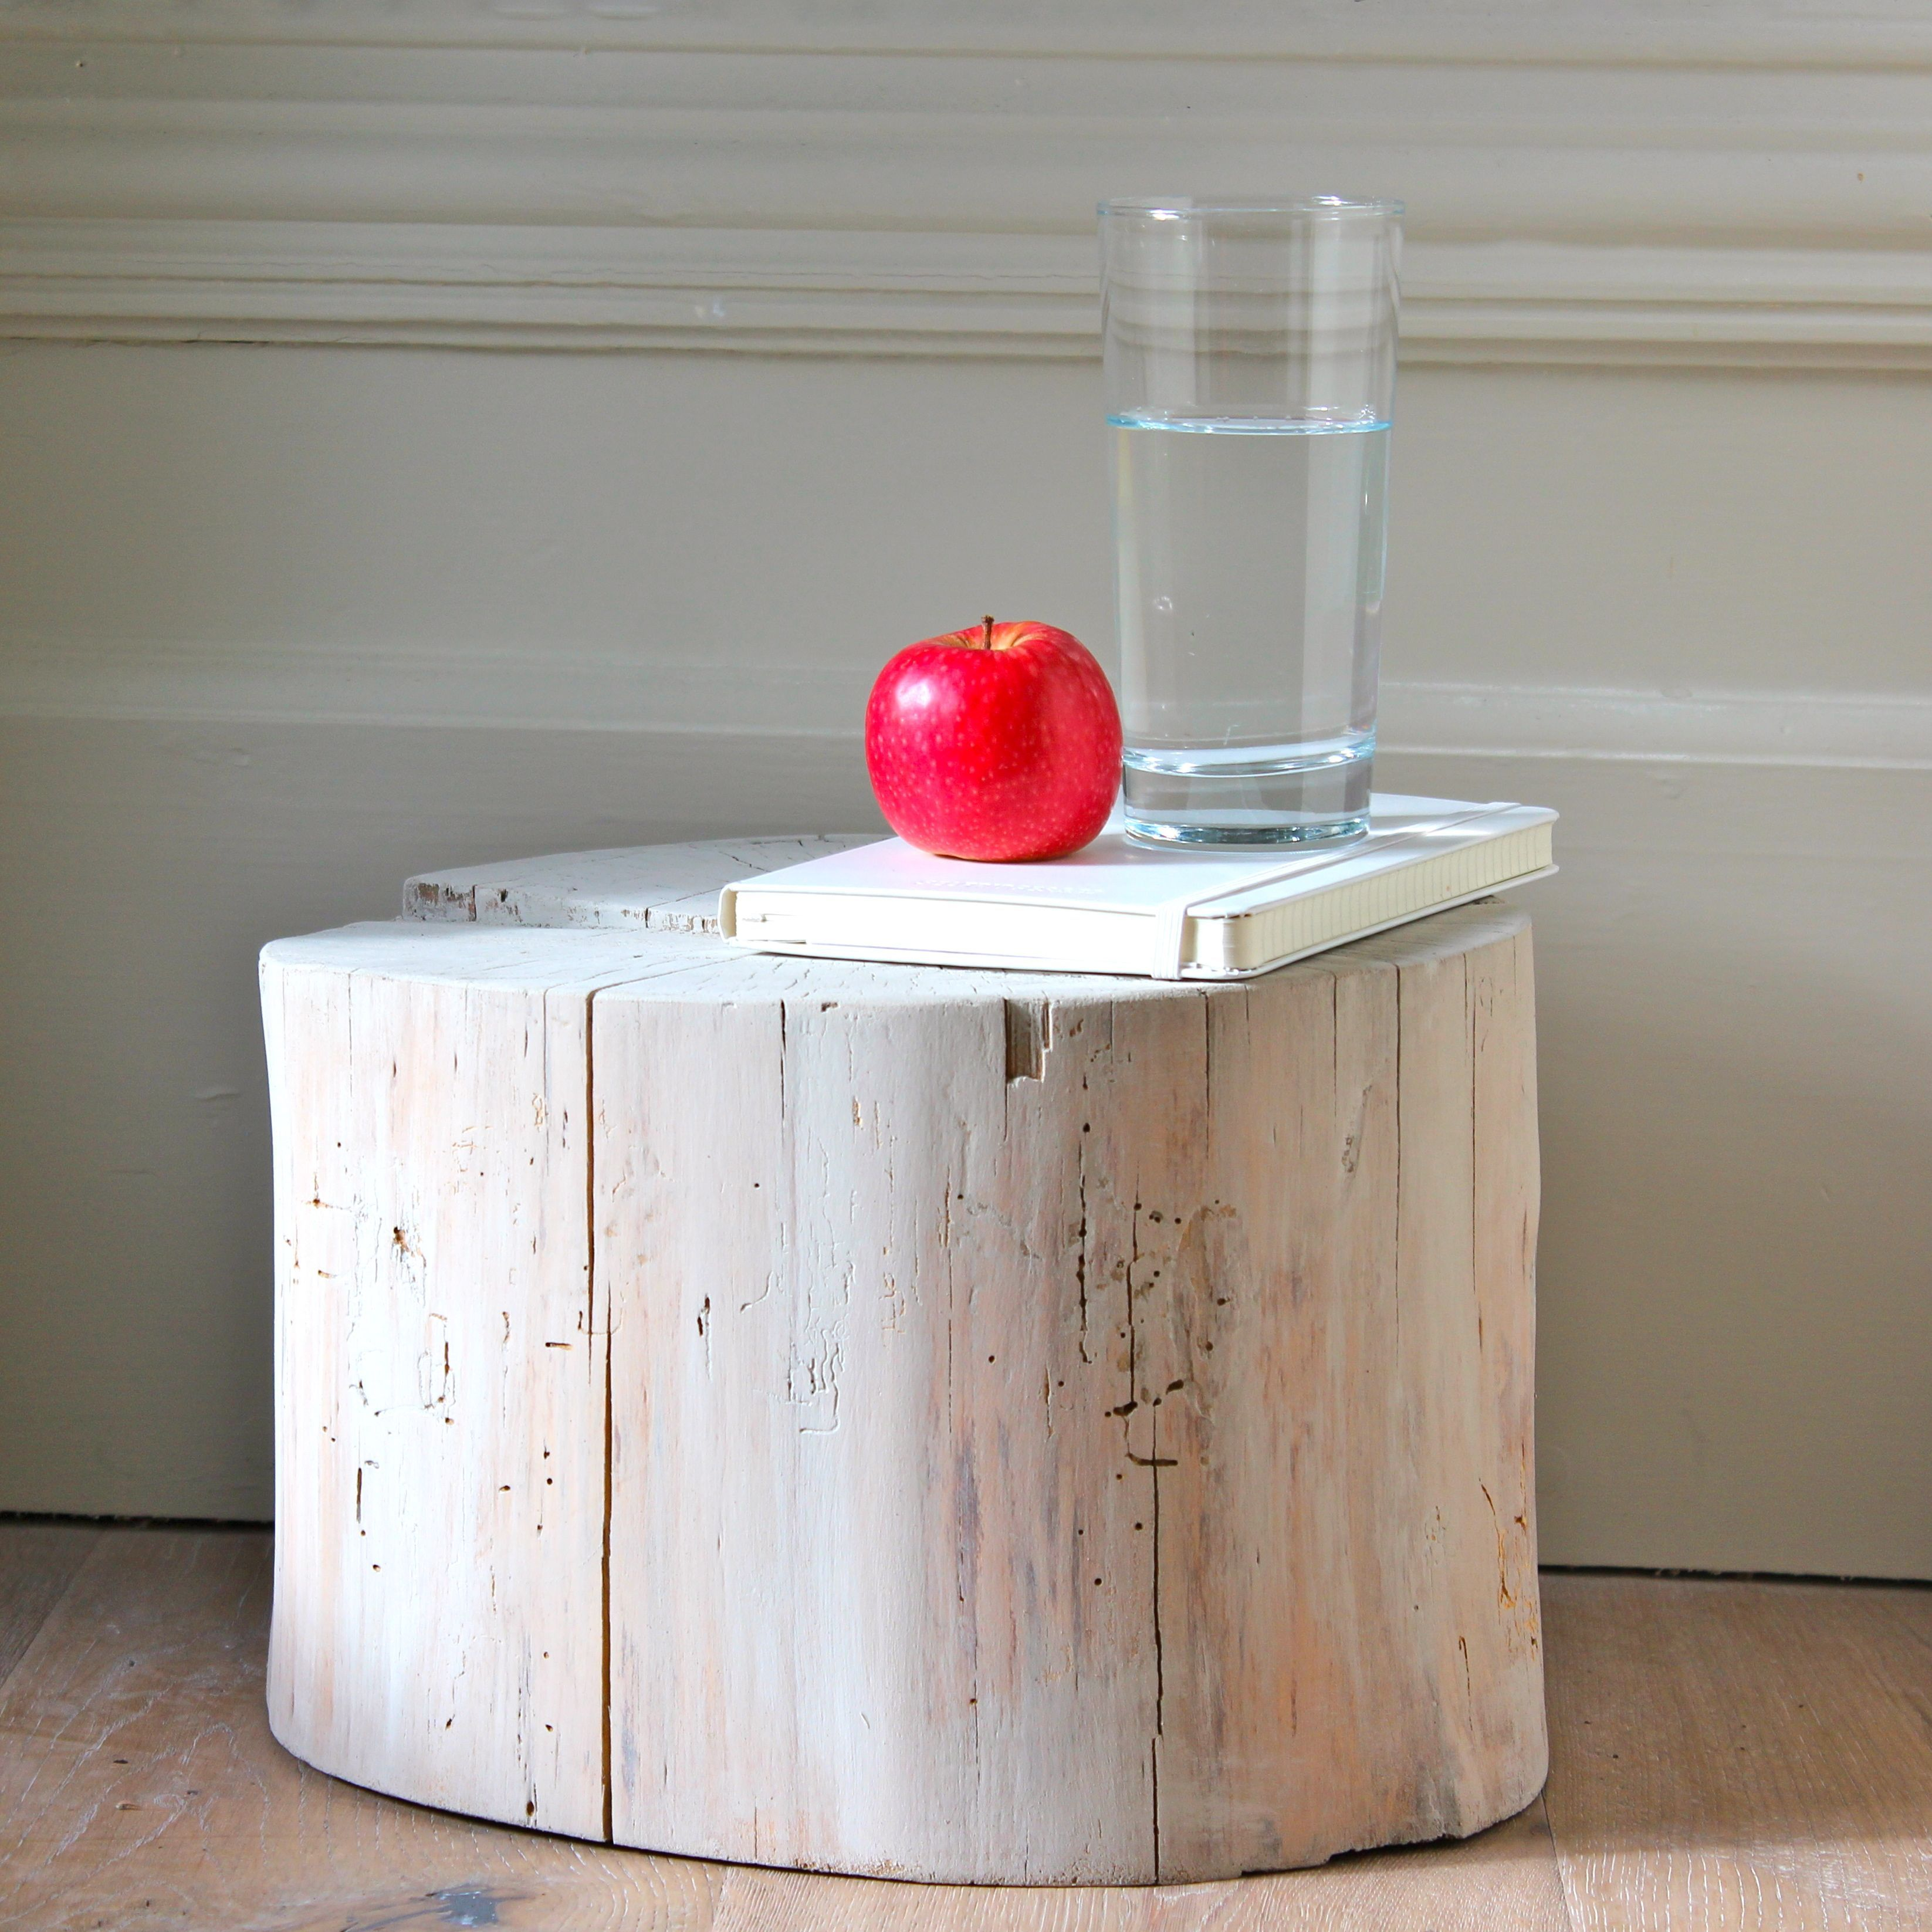 Log Side Table  Sanded And Applied 3 Parts Natural Liquid Wax Or Wood Woil  To